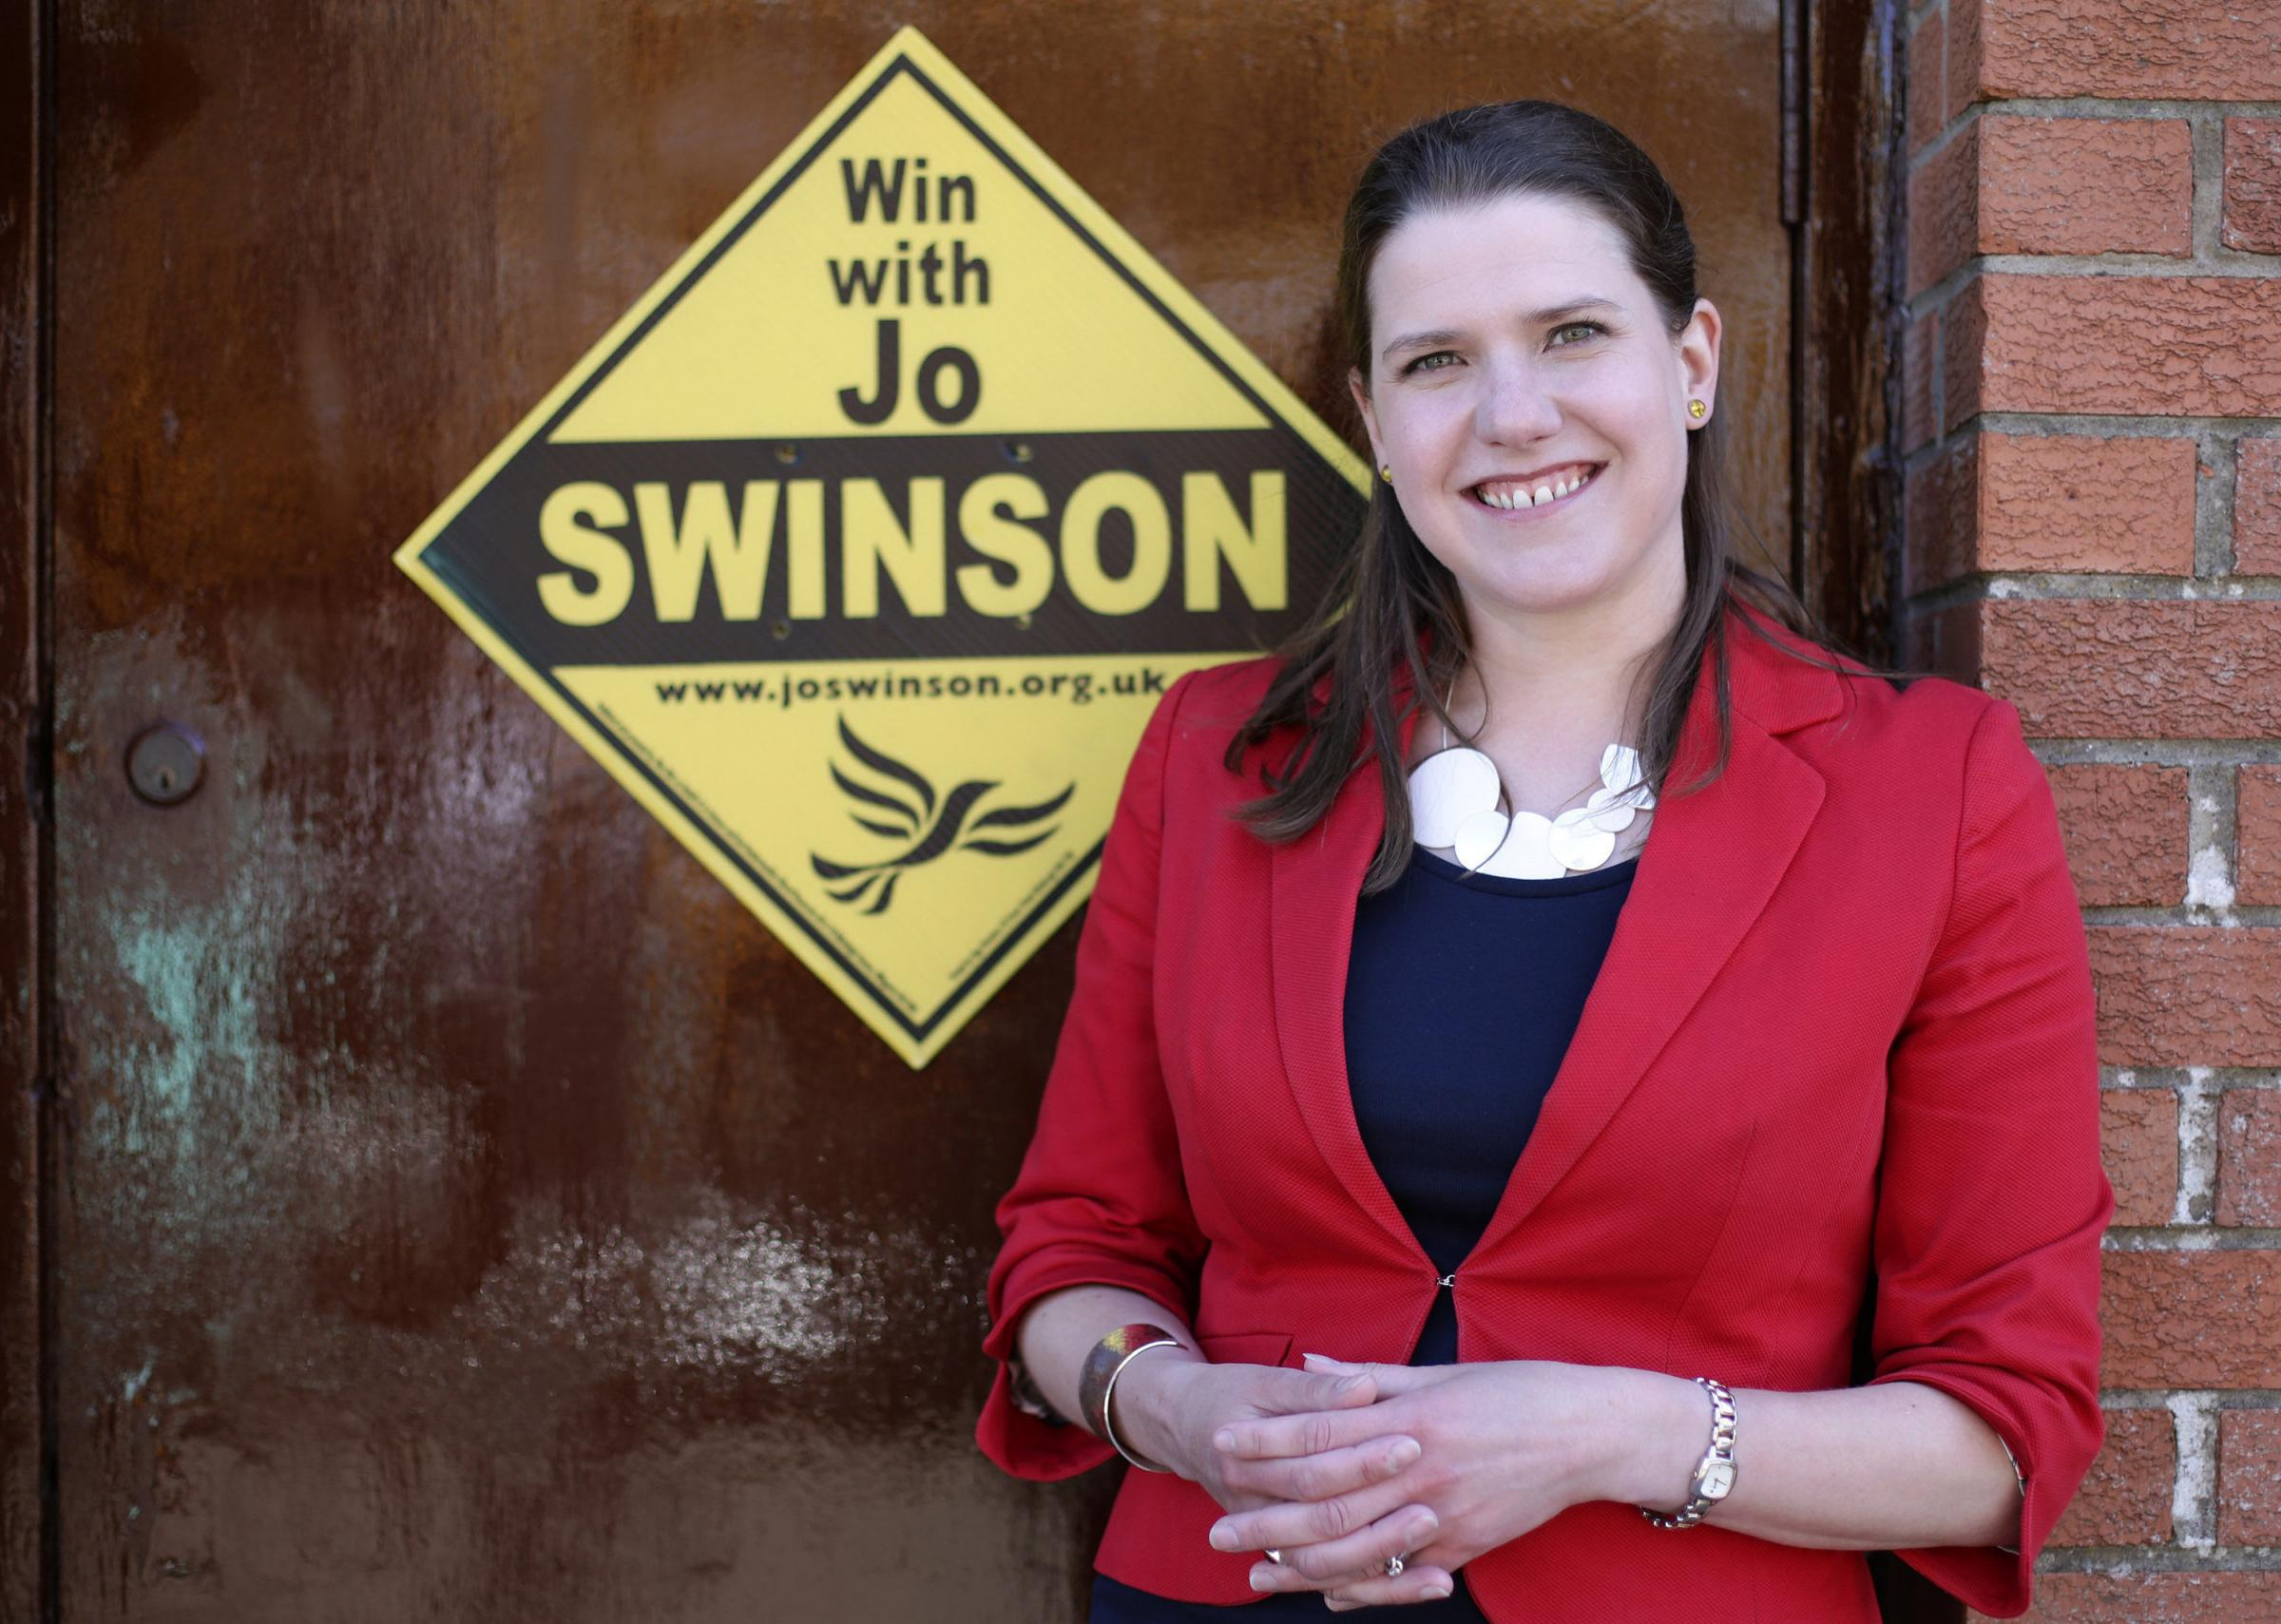 Swinson announces birth of second son